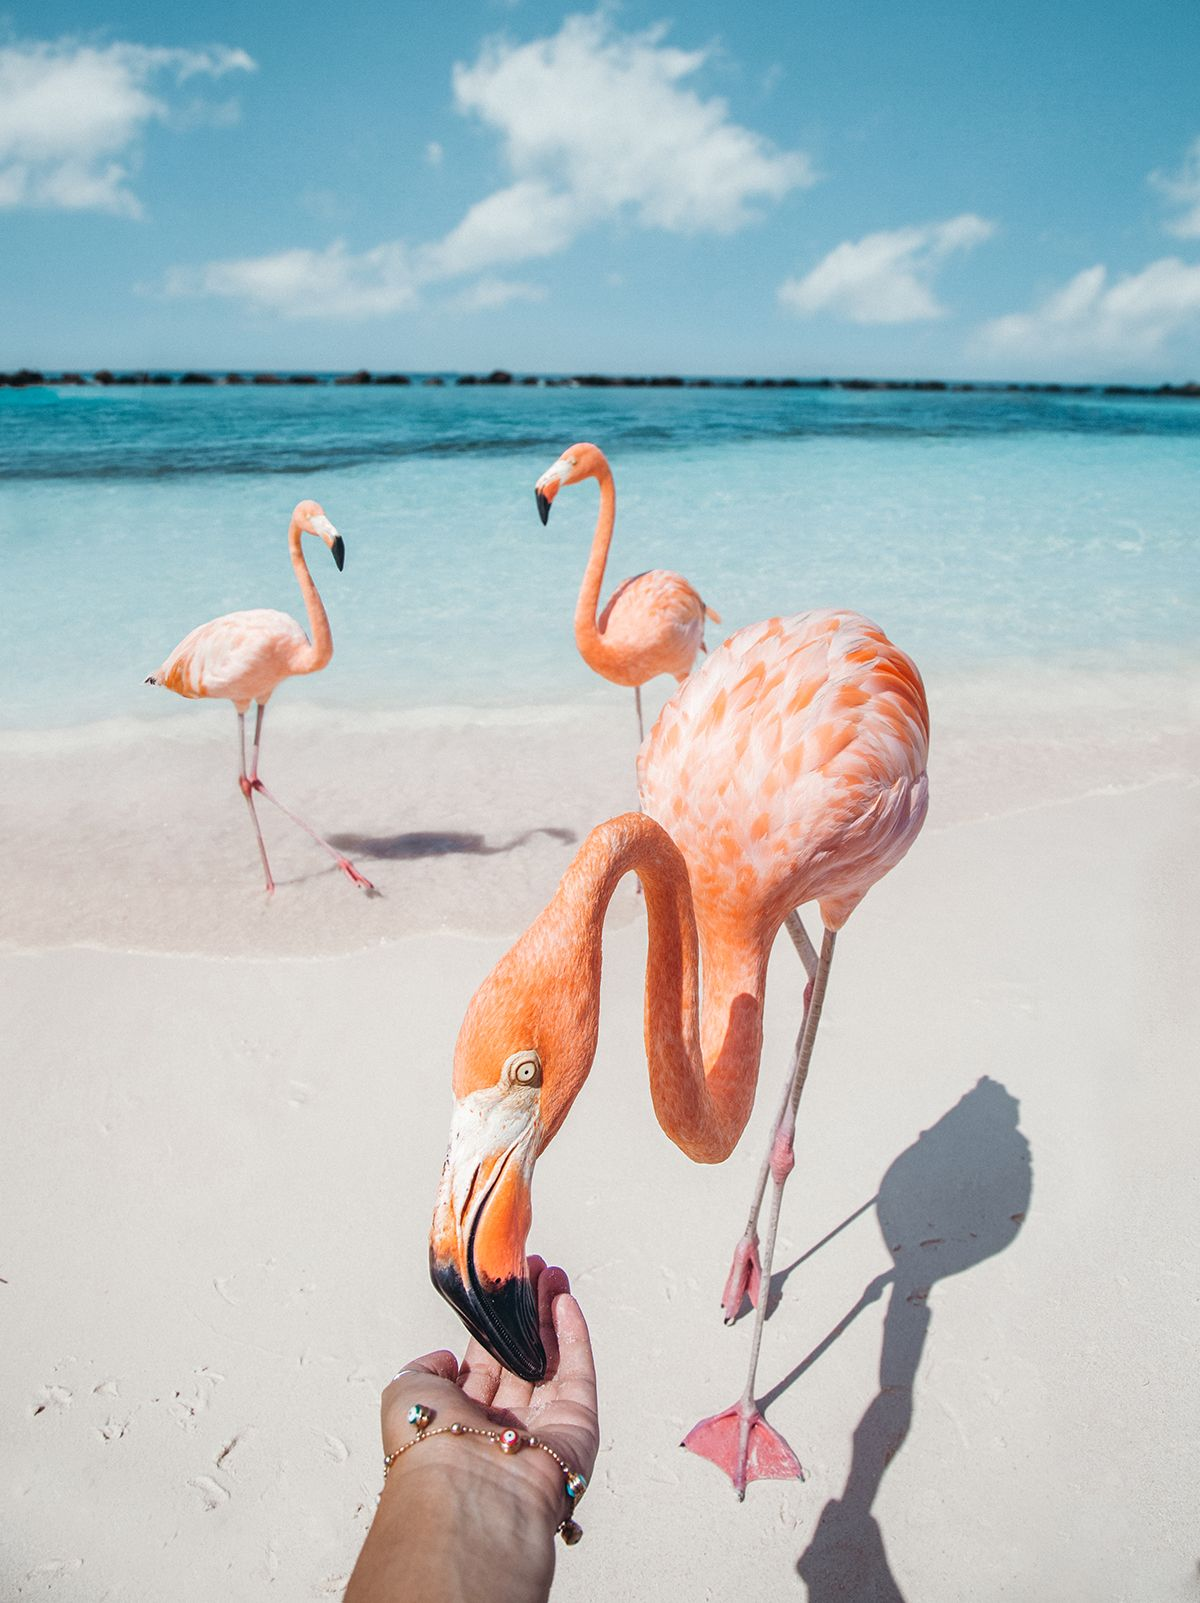 @katerinastavreva #aruba #flamingobeach #flamingos #vacationlooks